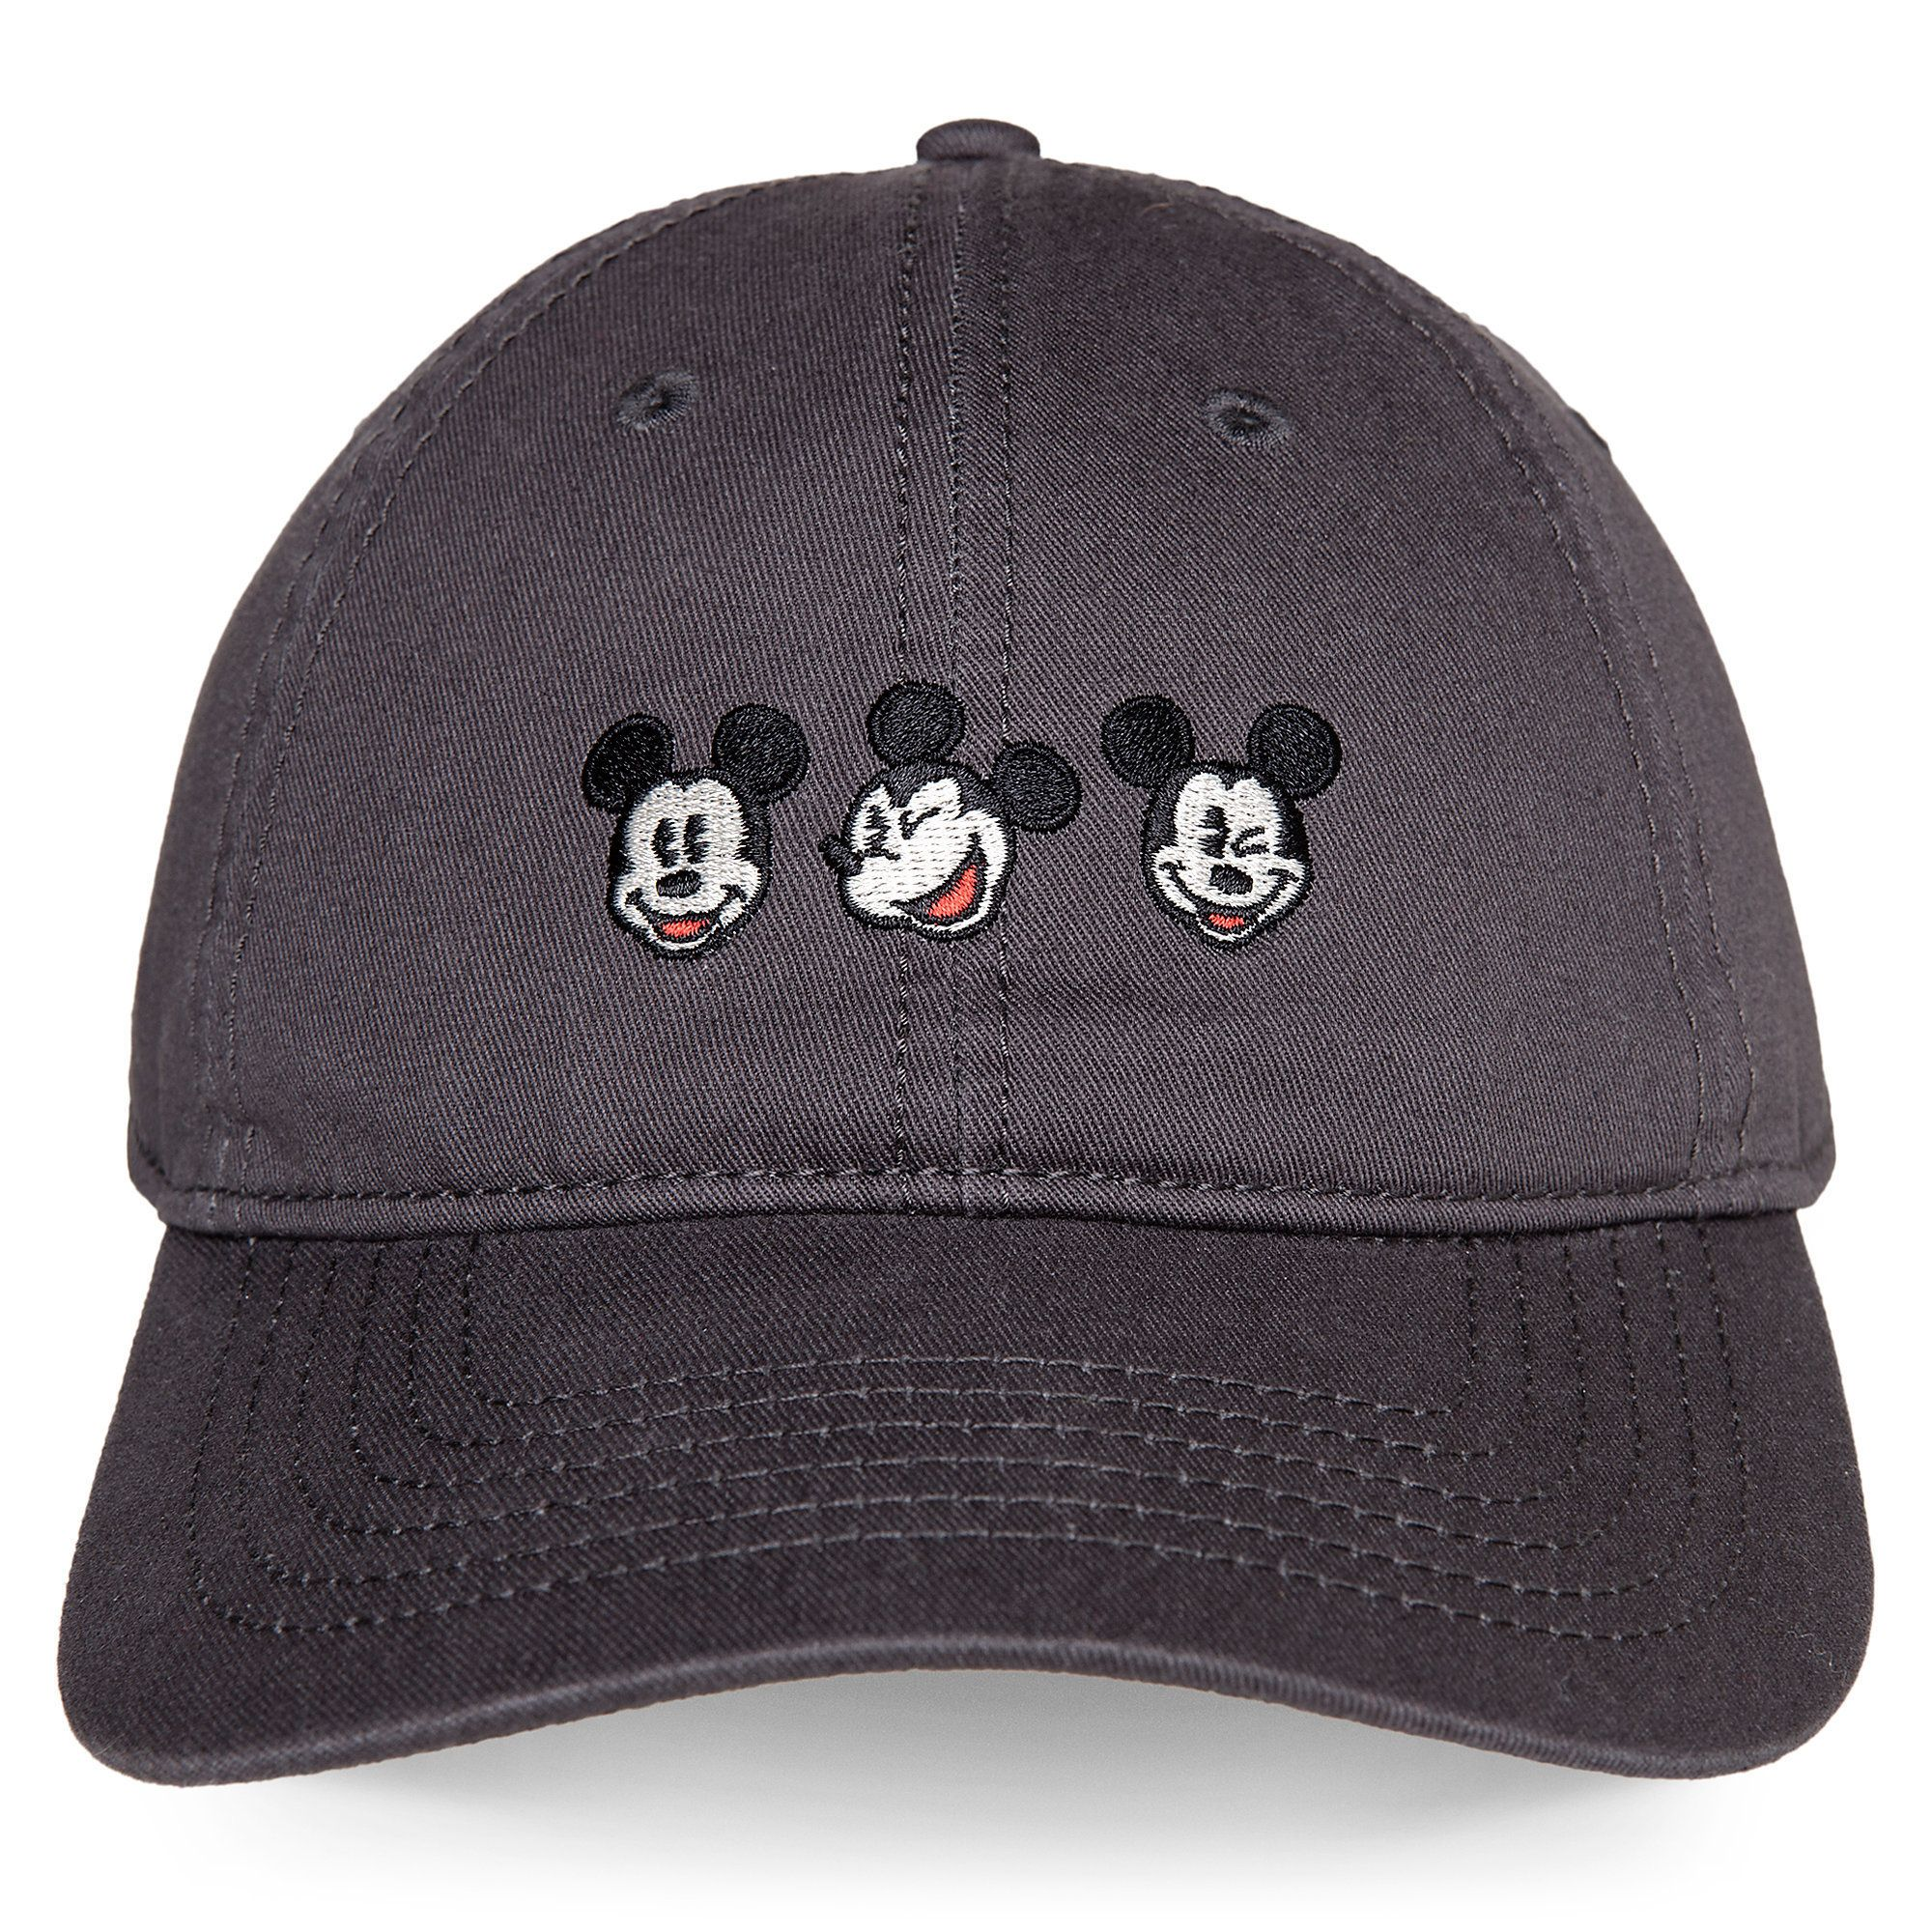 Mickey Mouse Embroidered Baseball Cap for Adults  035c016f954